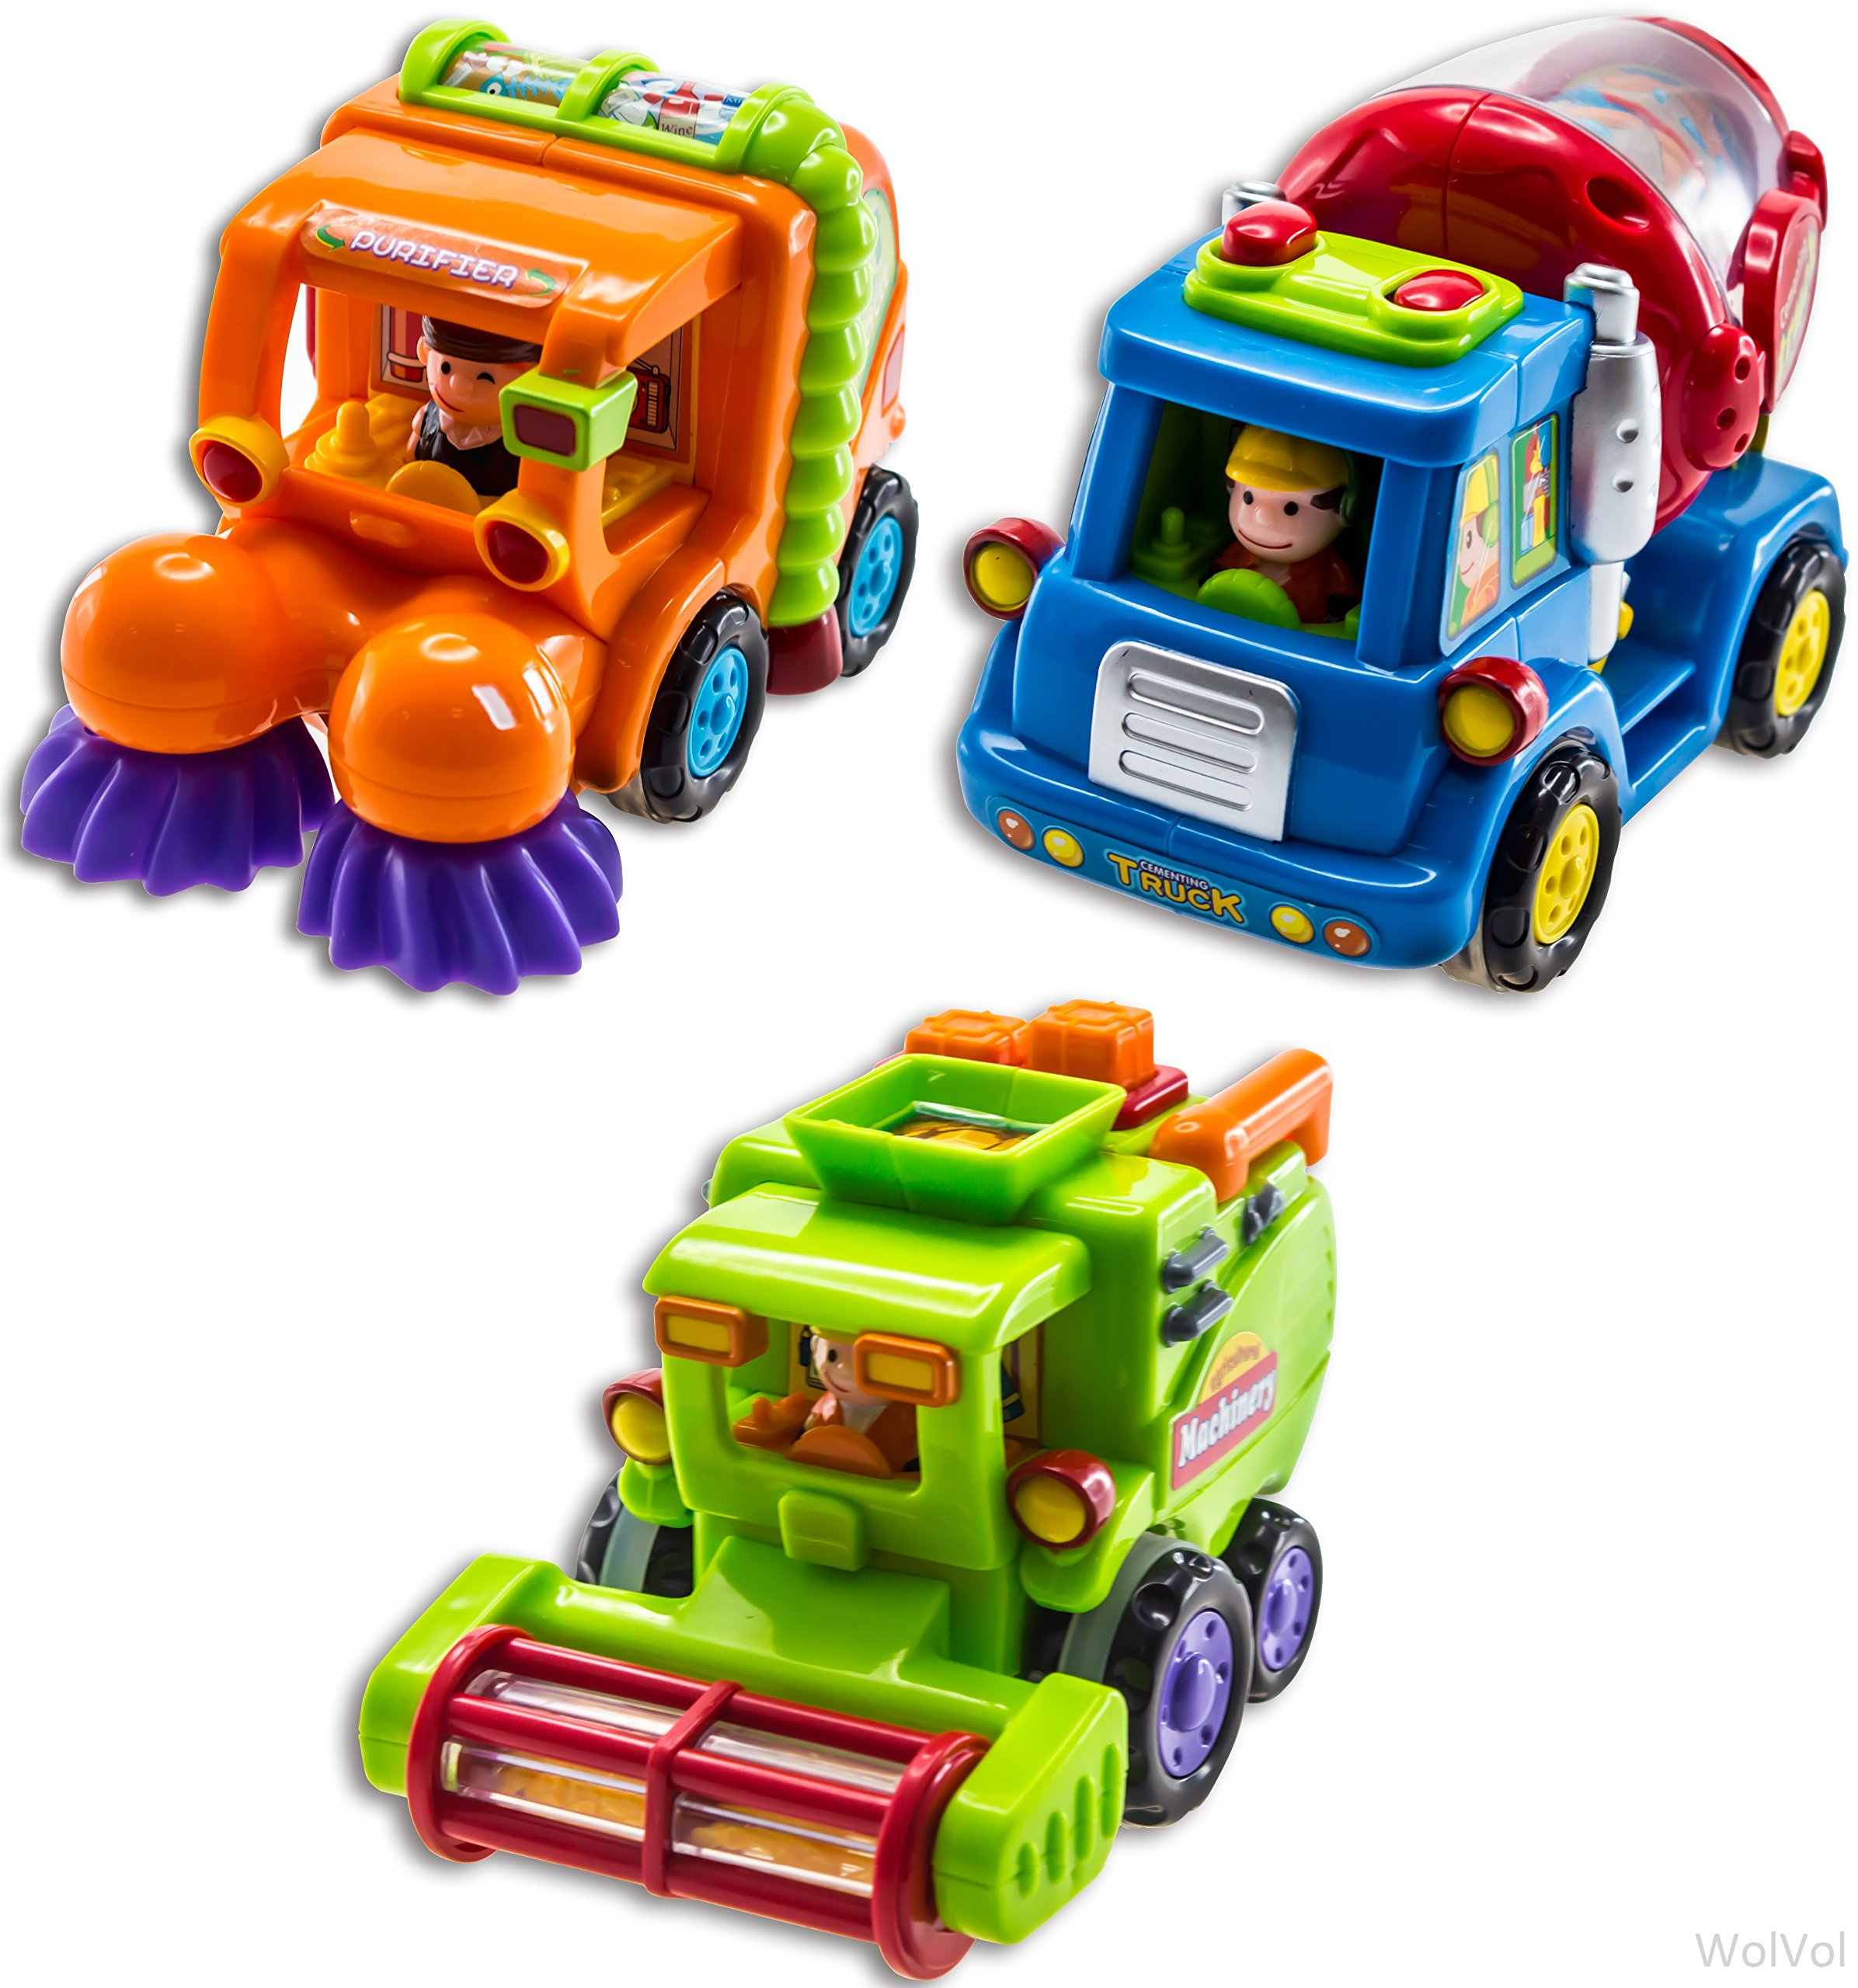 Toy Trucks For Boys : Product details